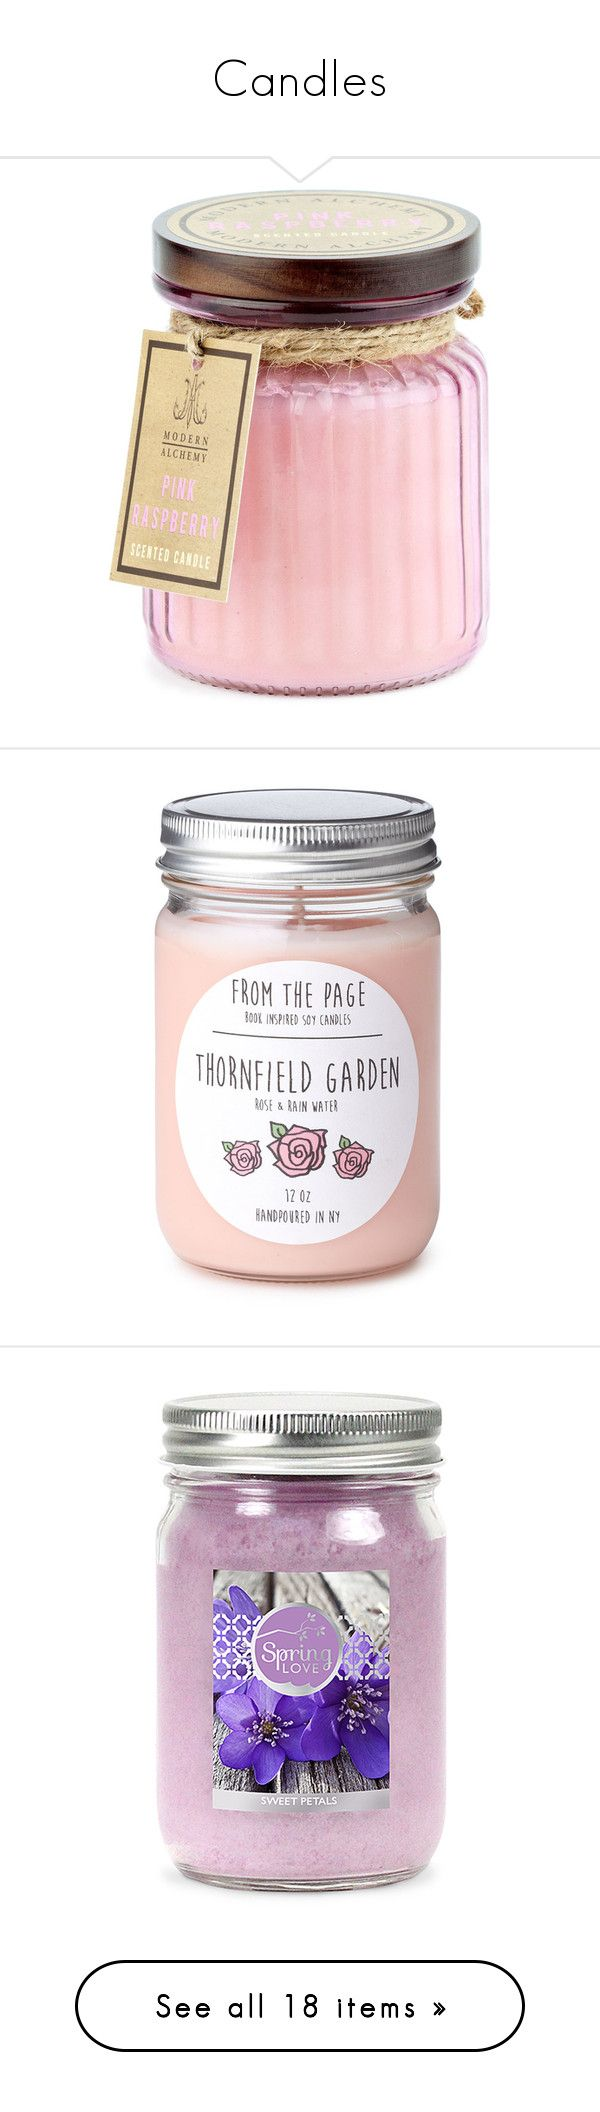 """Candles"" by sara-488 ❤ liked on Polyvore featuring home, home decor, candles & candleholders, pink, pineapple scented candle, round candles, dragon home decor, pineapple home decor, honey scented candle and fillers"